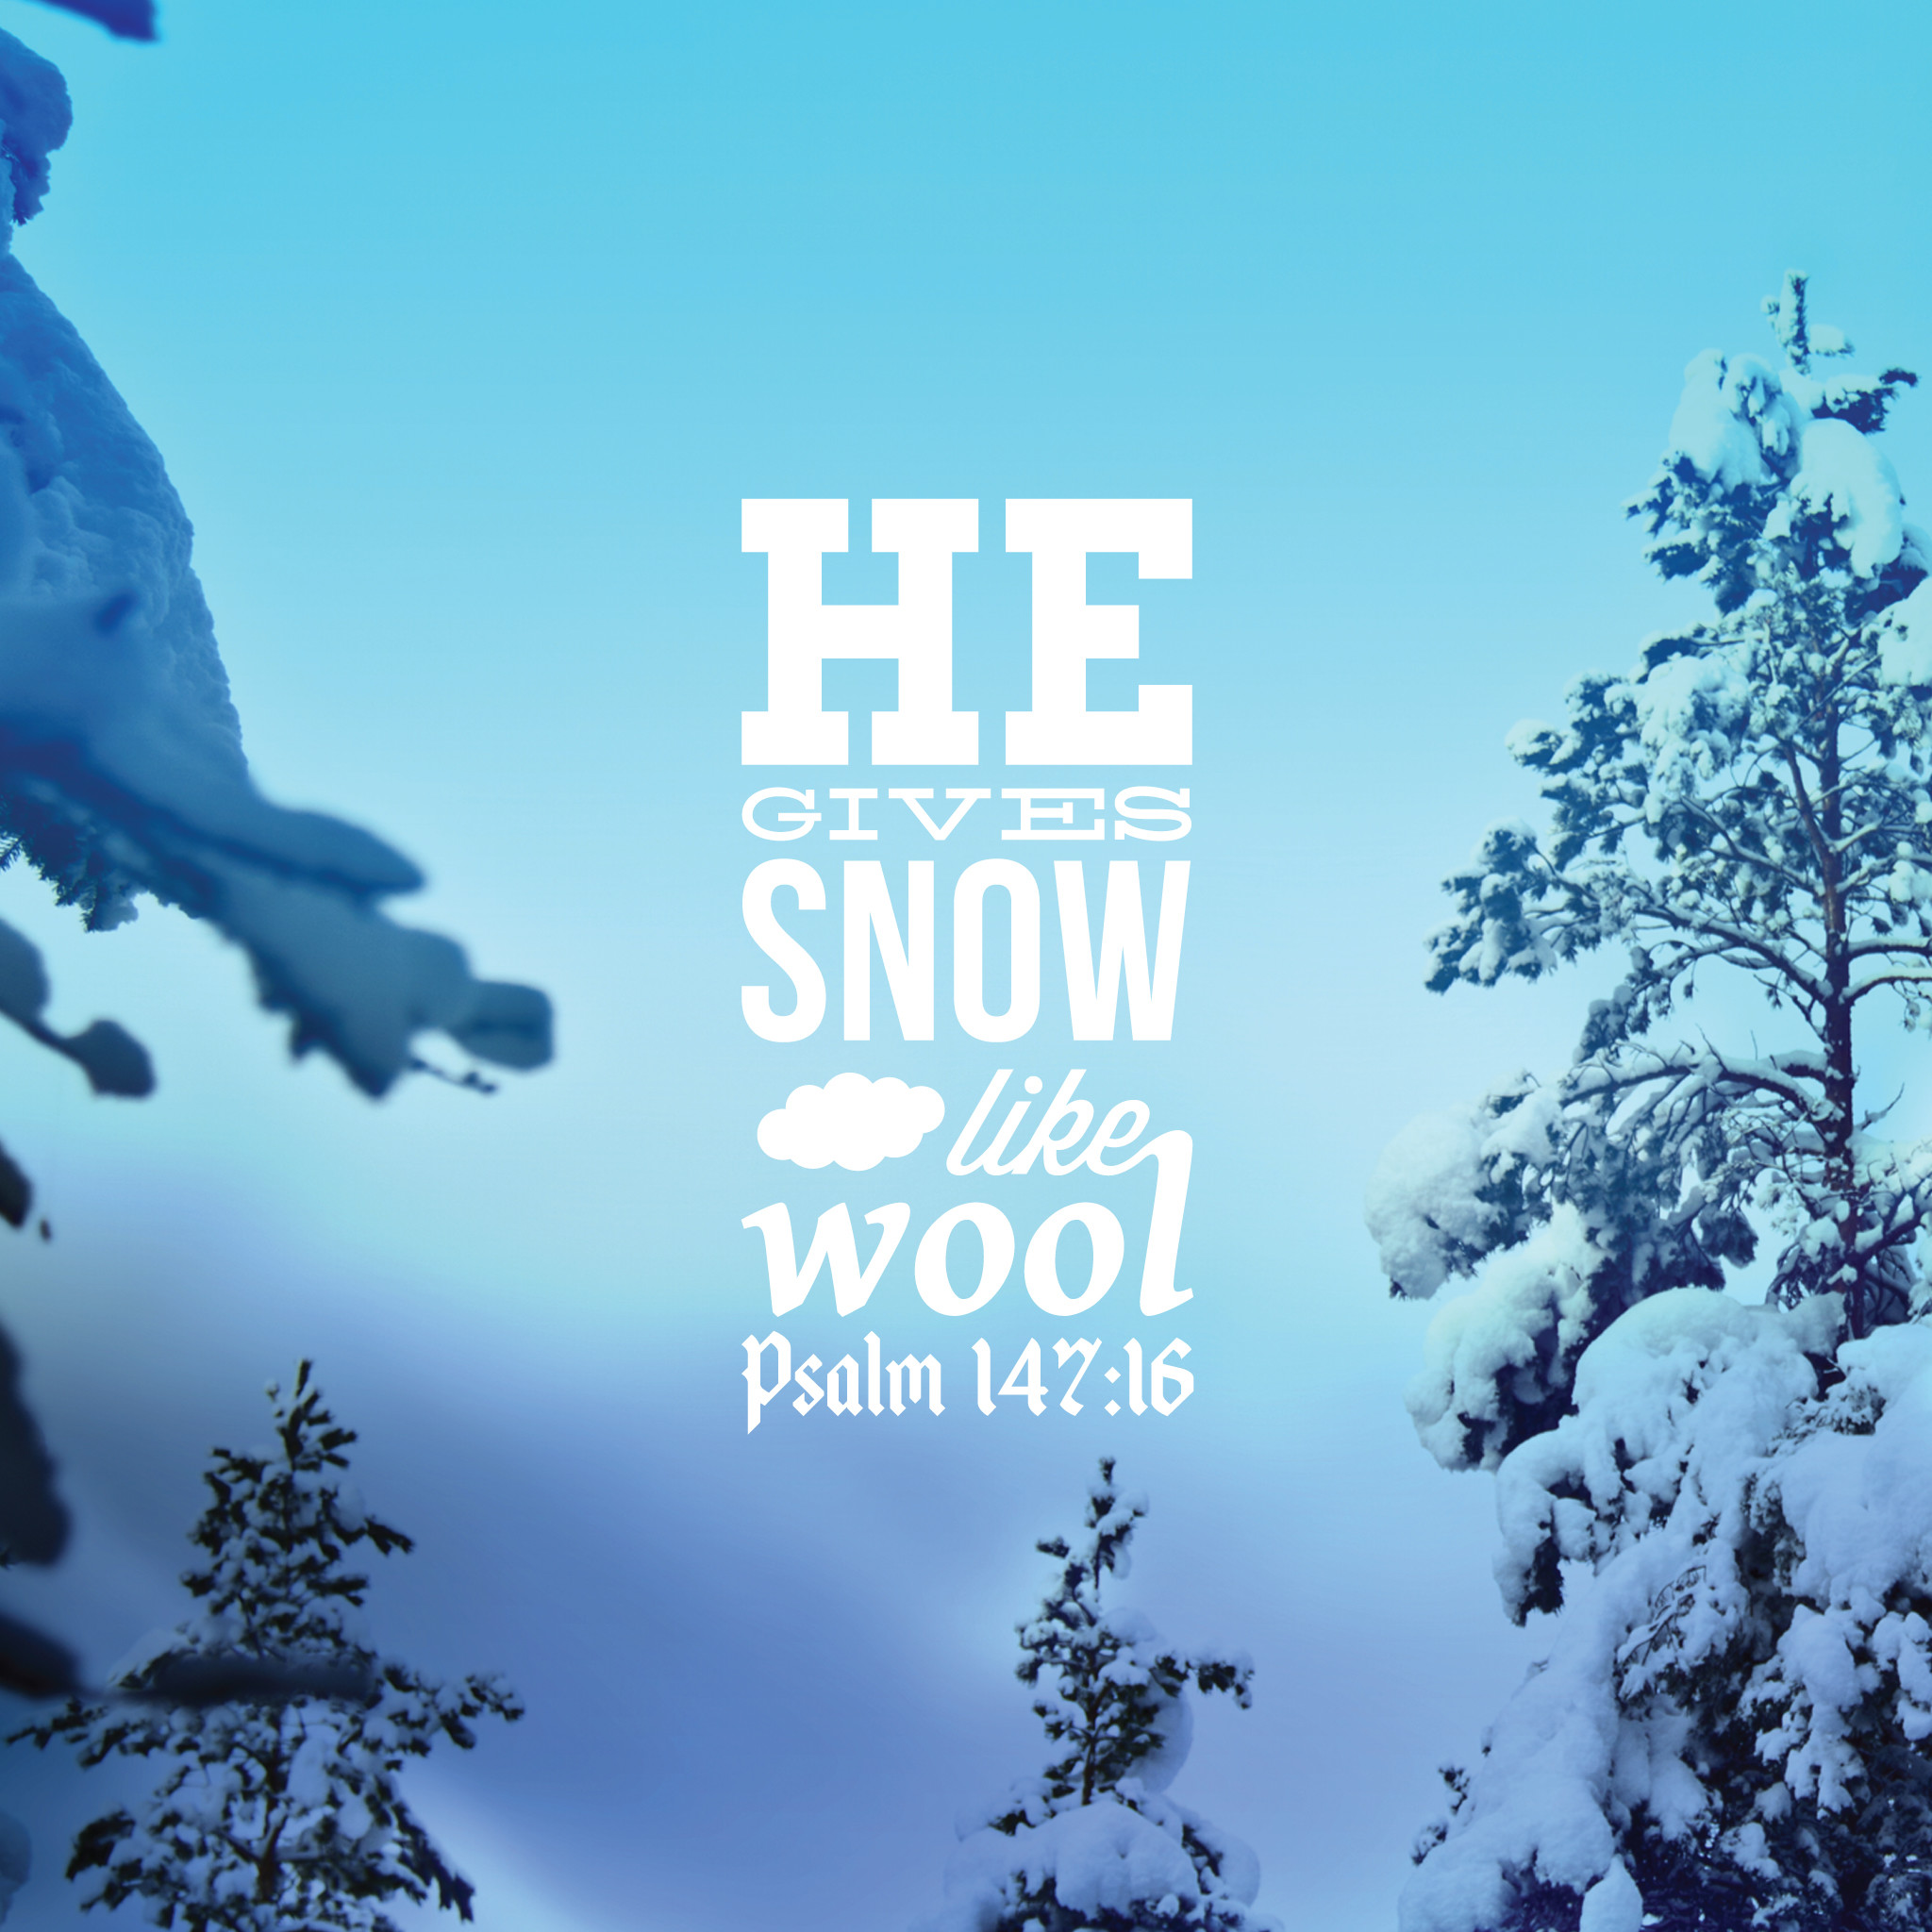 Winter scriptural clipart graphic library download Winter Scripture Wallpaper (53+ images) graphic library download